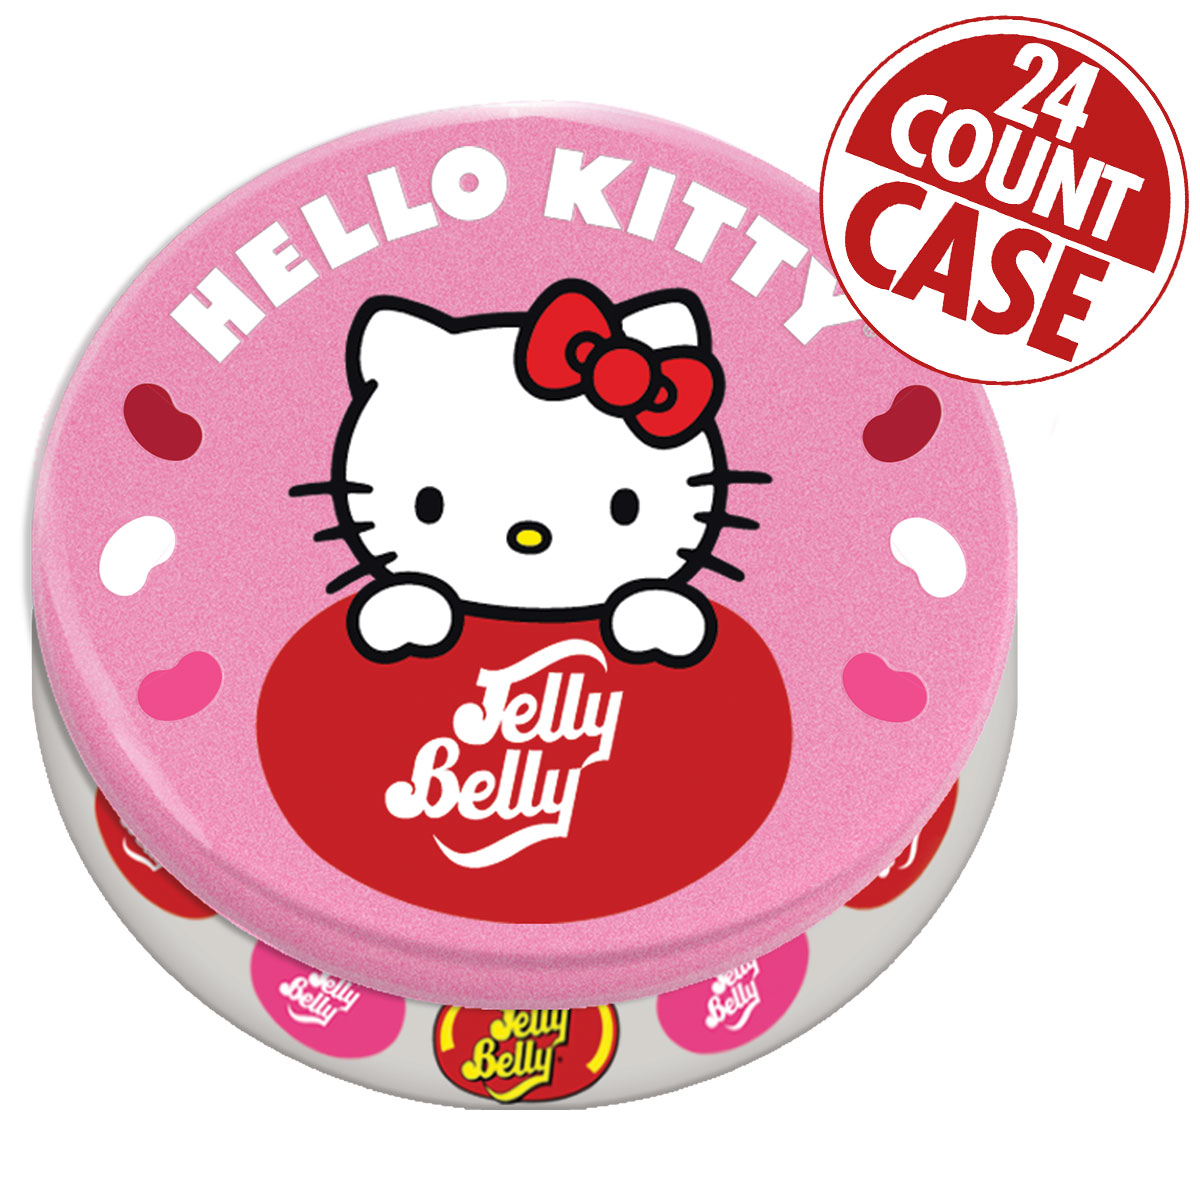 Hello Kitty<sup>®</sup> Favorite Flavors Jelly Beans Tin - 1.5 oz - 24 Count Case